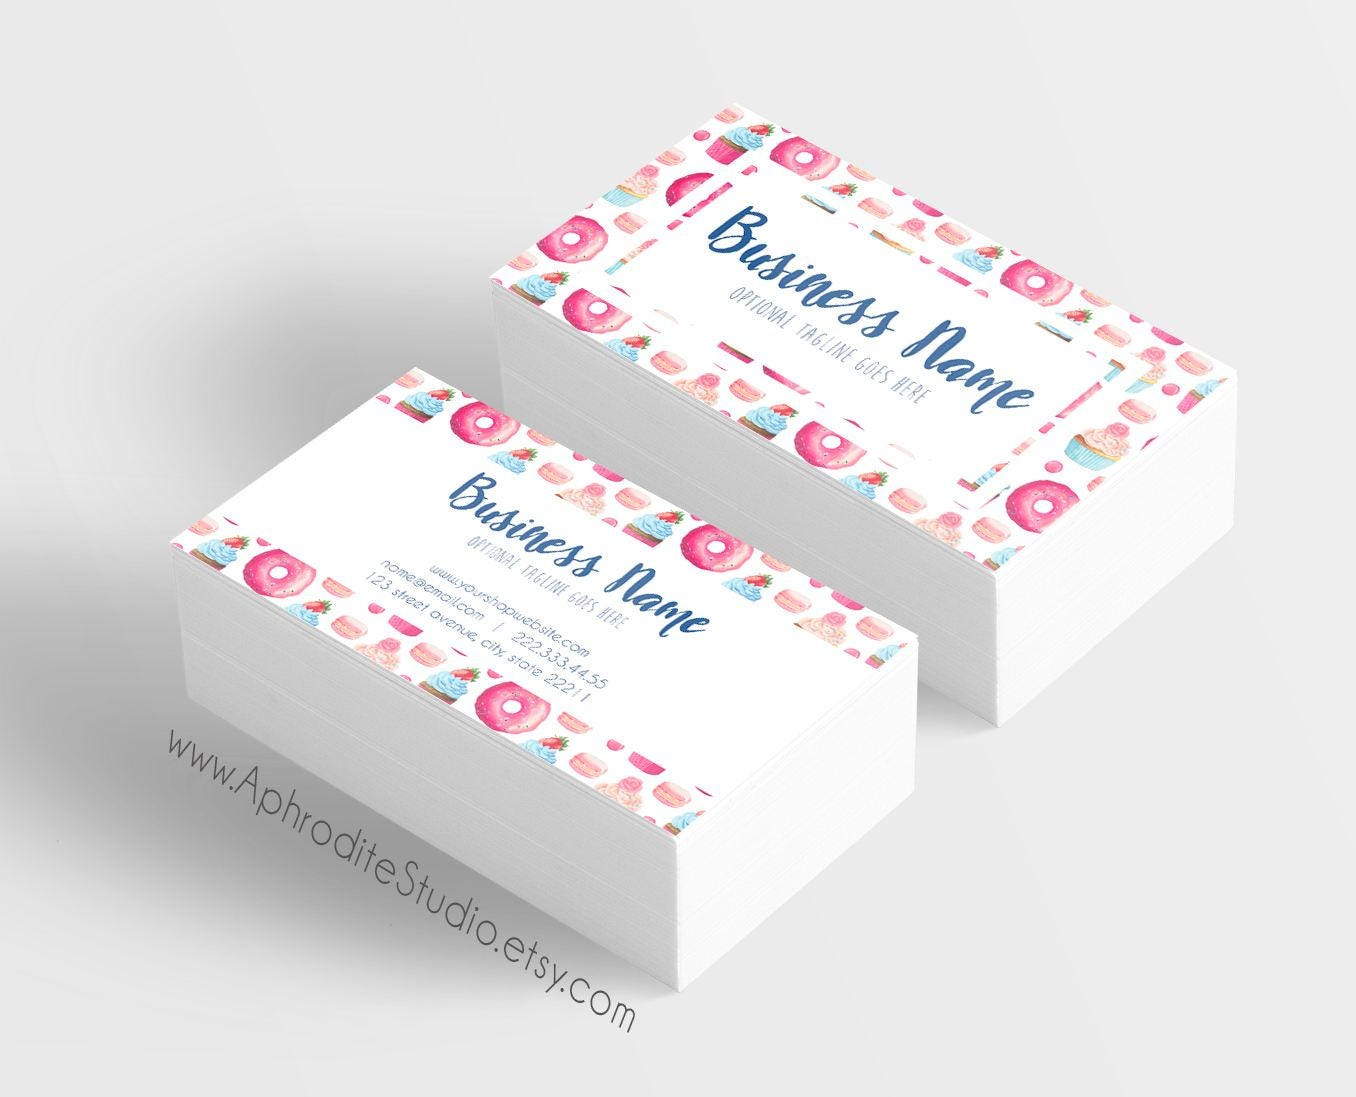 Bakery business cards - Candy business cards - Printable business ...